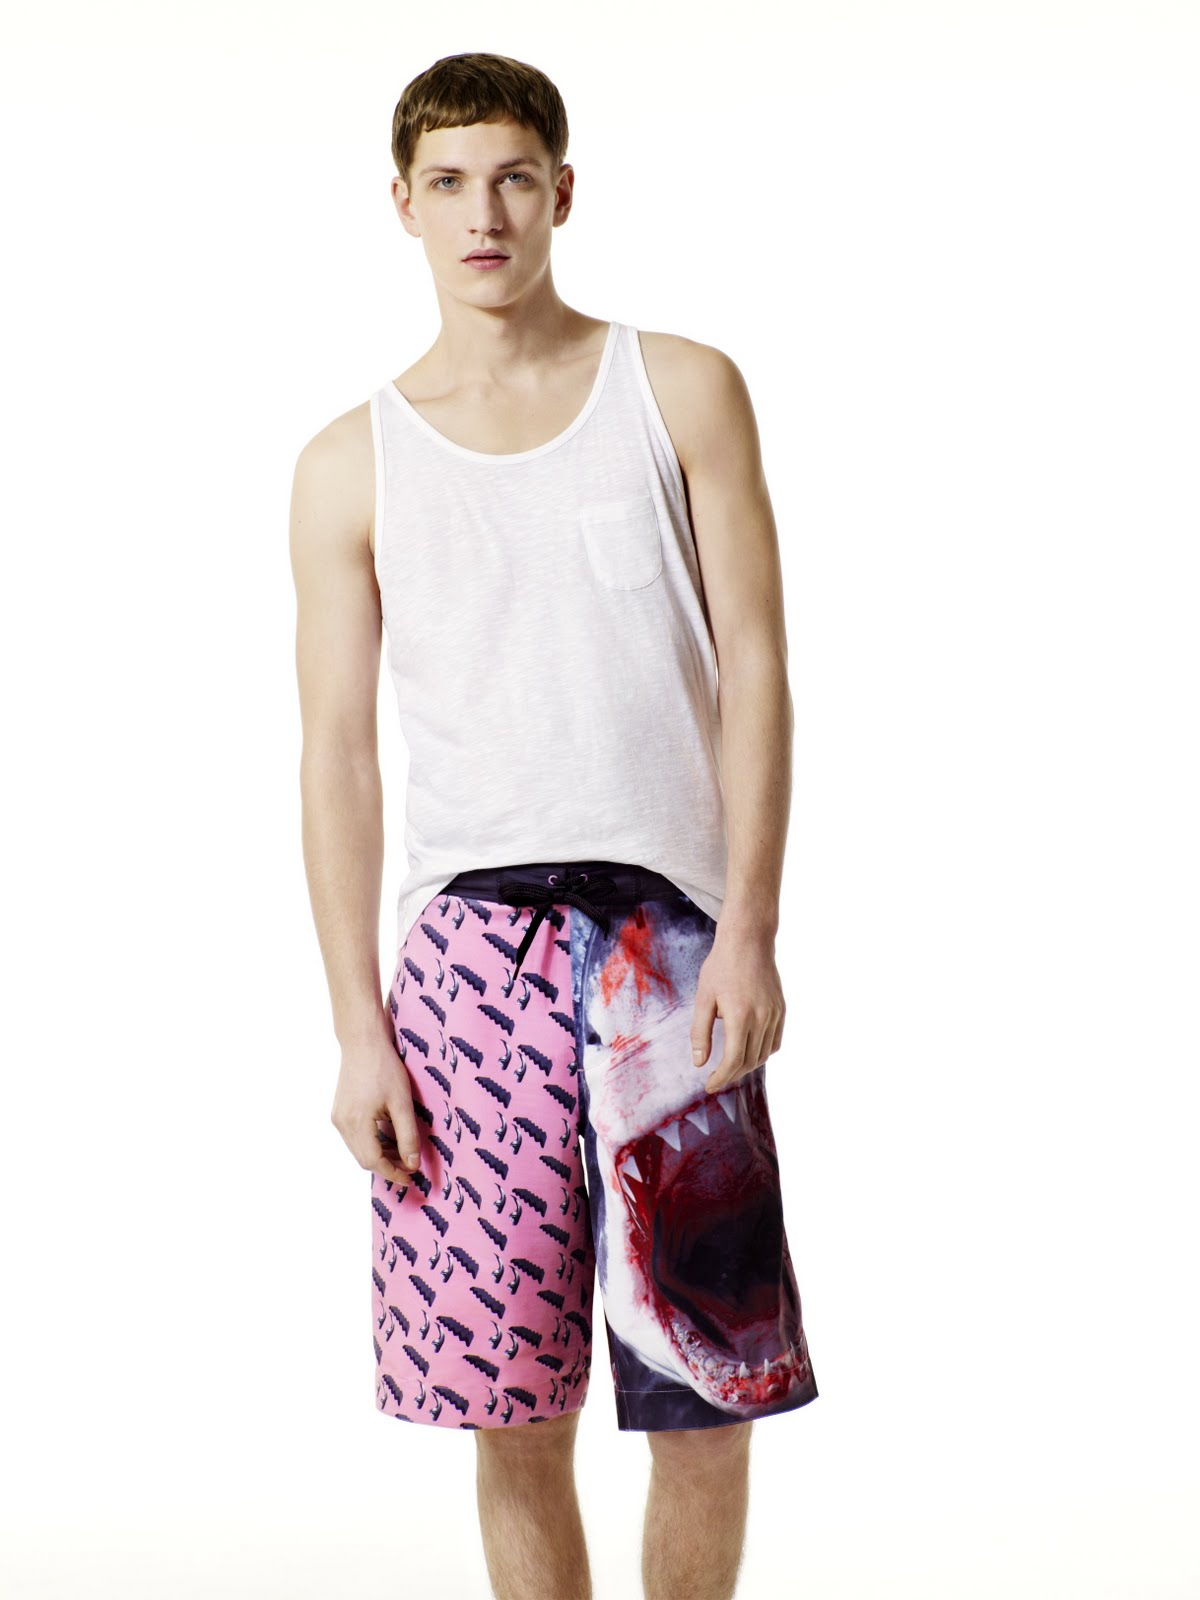 93f5ecebe2 Her short is this boyish knee length with one leg block coloured in pink and  the other leg featuring a photographic print of a shark.